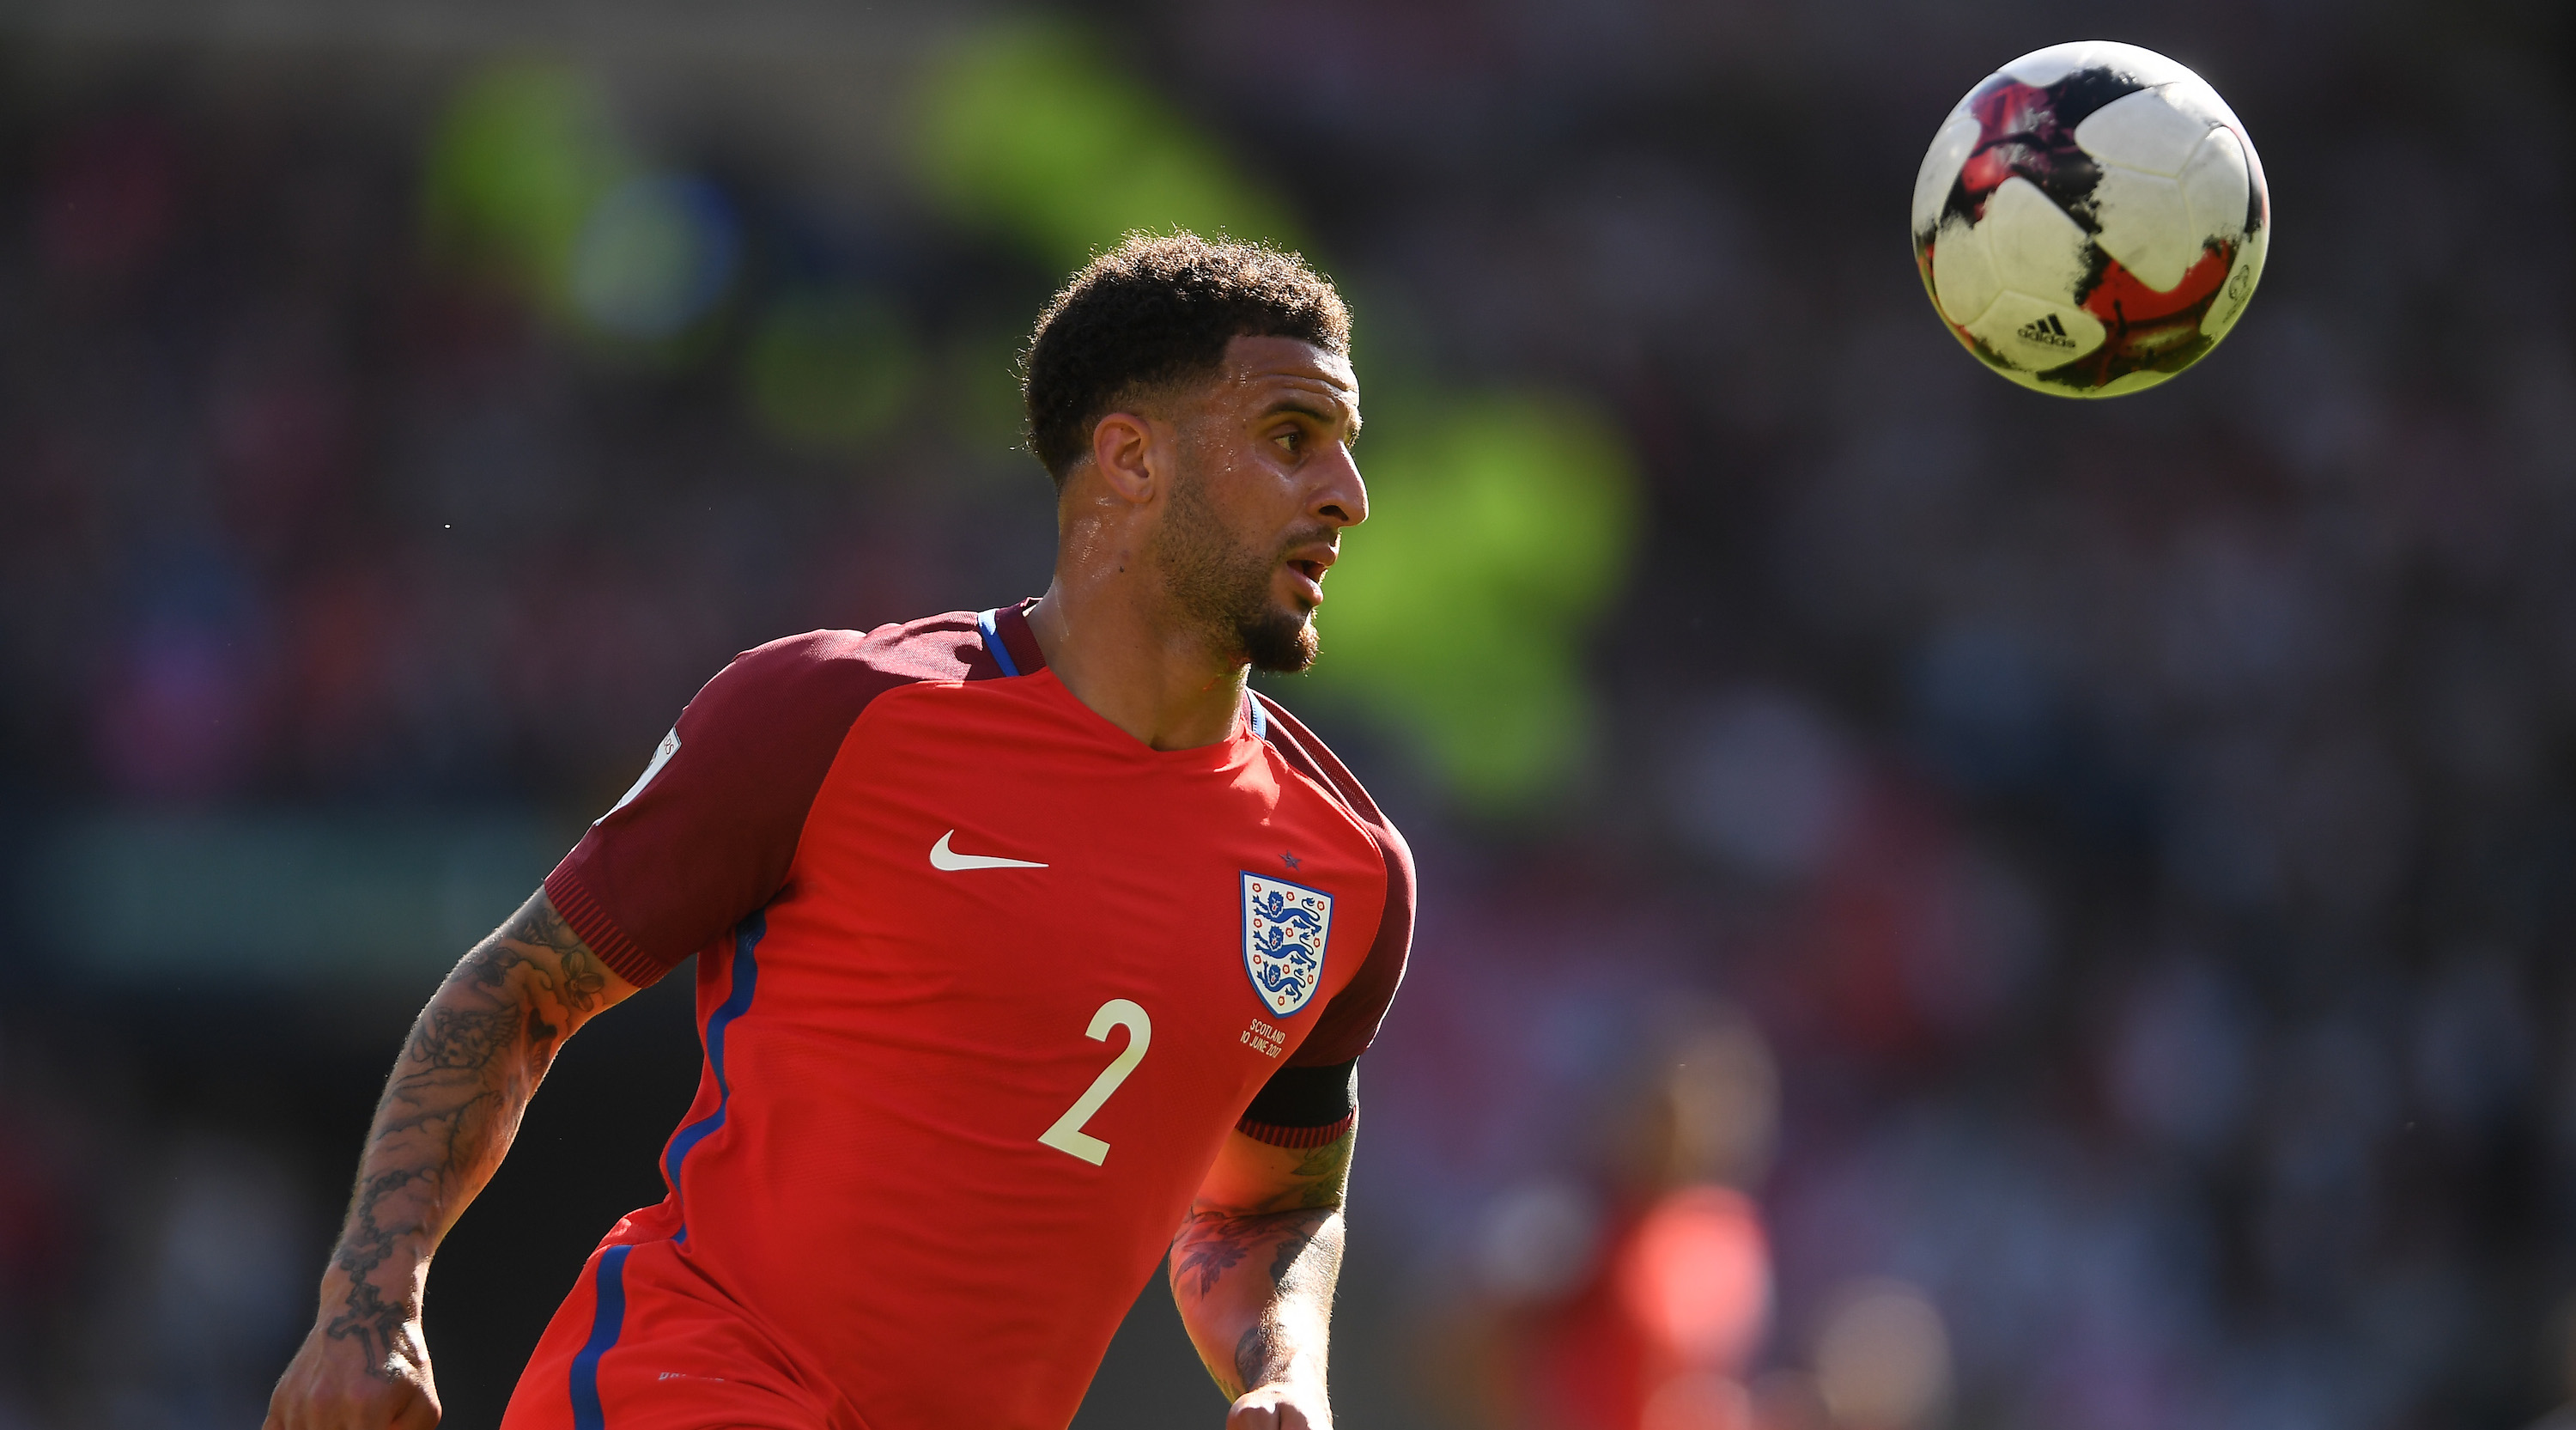 GLASGOW, SCOTLAND - JUNE 10: Kyle Walker of England in action during the FIFA 2018 World Cup Qualifier between Scotland and England at Hampden Park National Stadium on June 10, 2017 in Glasgow, Scotland. (Photo by Mike Hewitt/Getty Images)